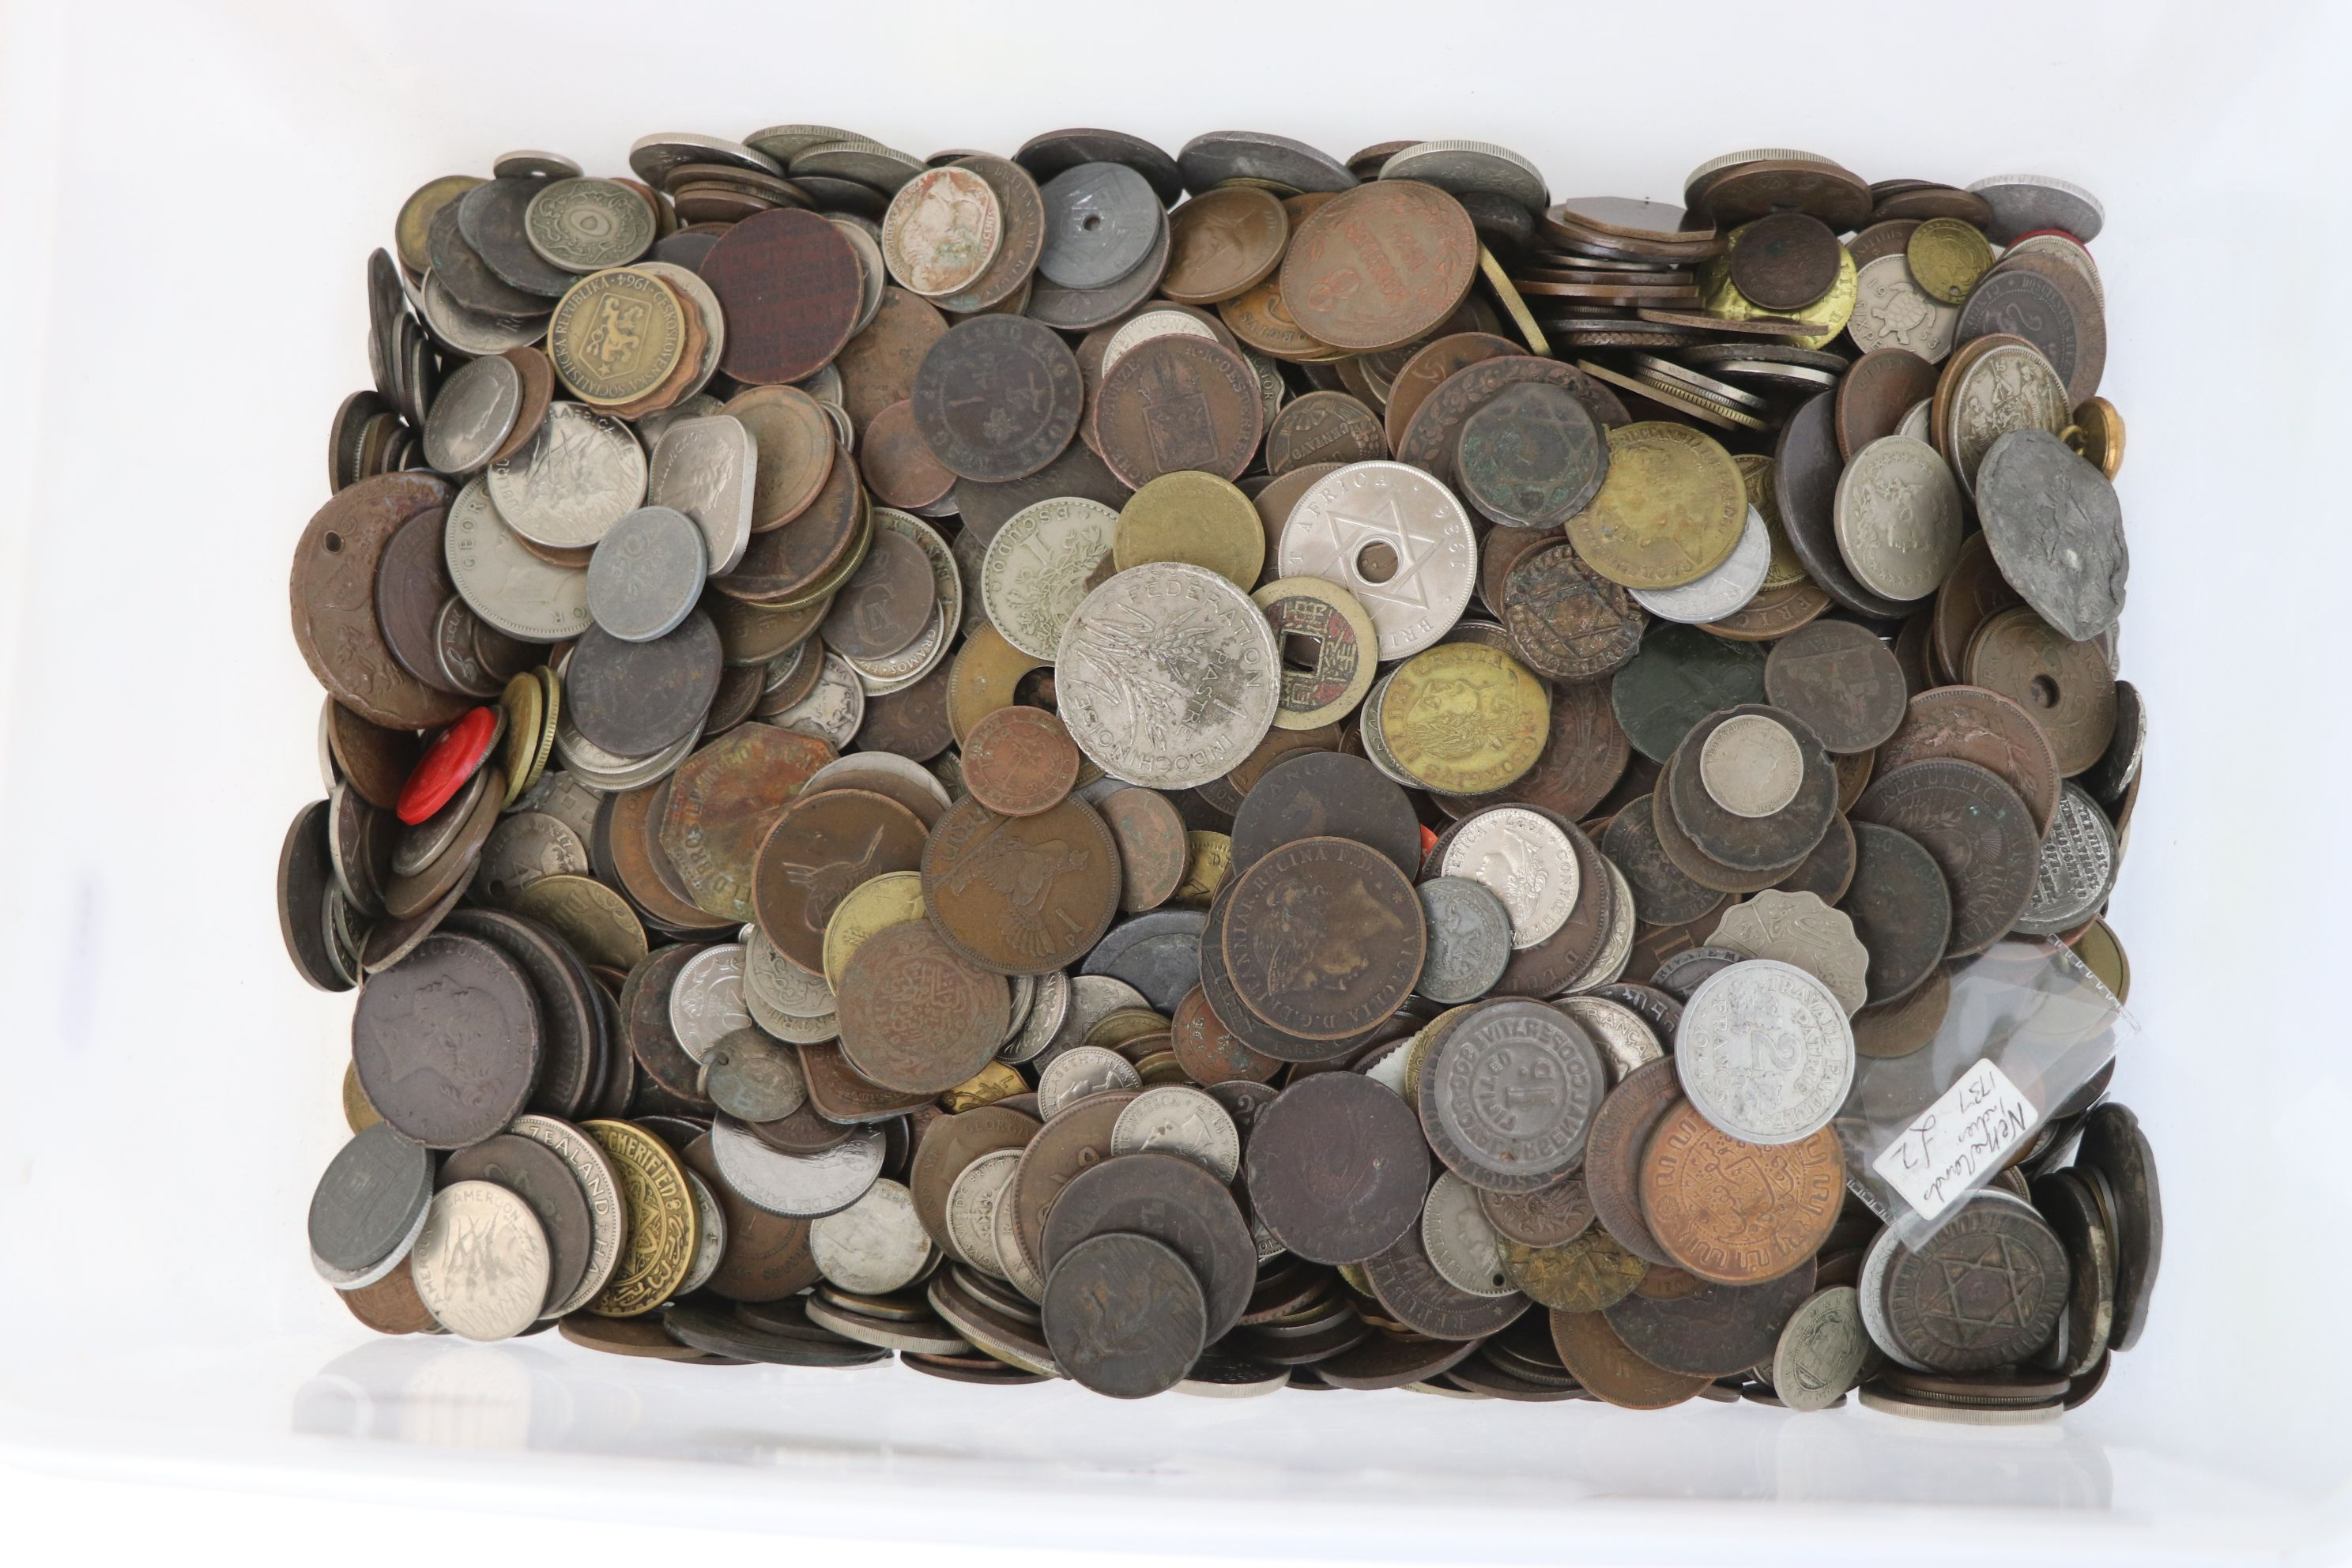 A large collection of British and World coins to include silver examples.